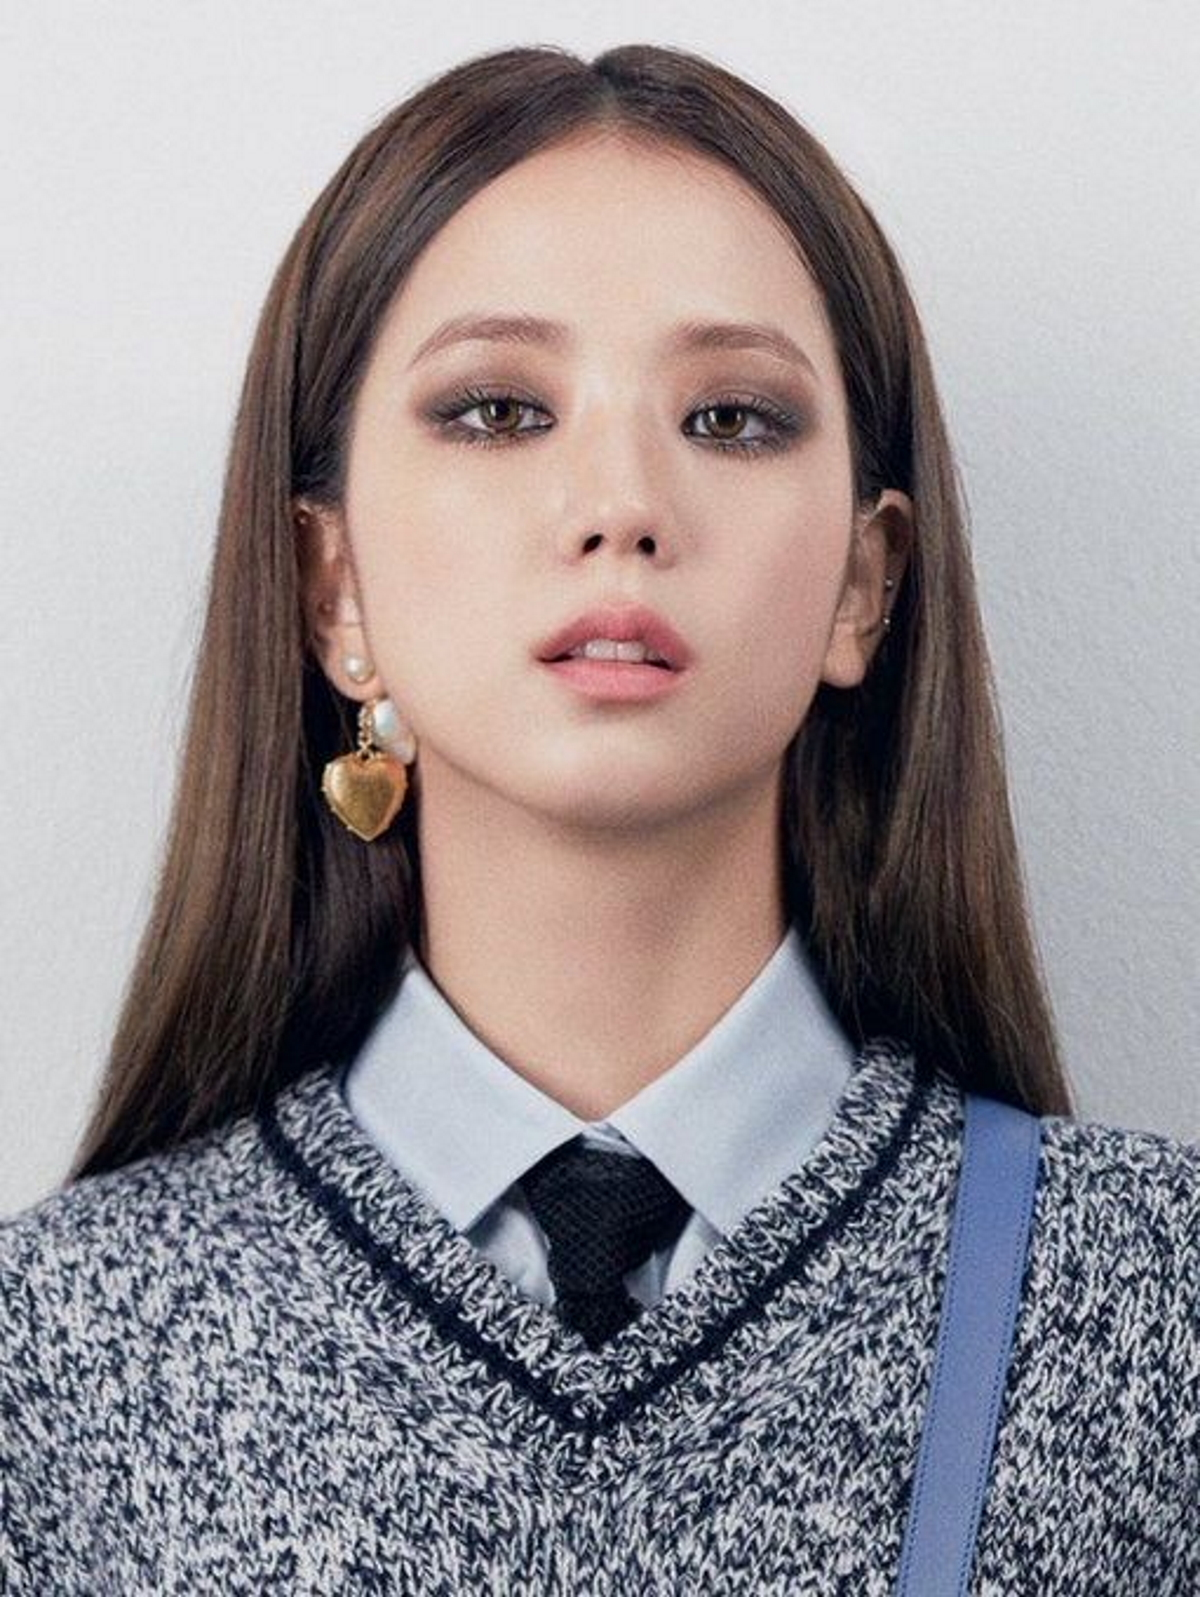 BLACKPINK Jisoo?: How much fan are you of the idol?